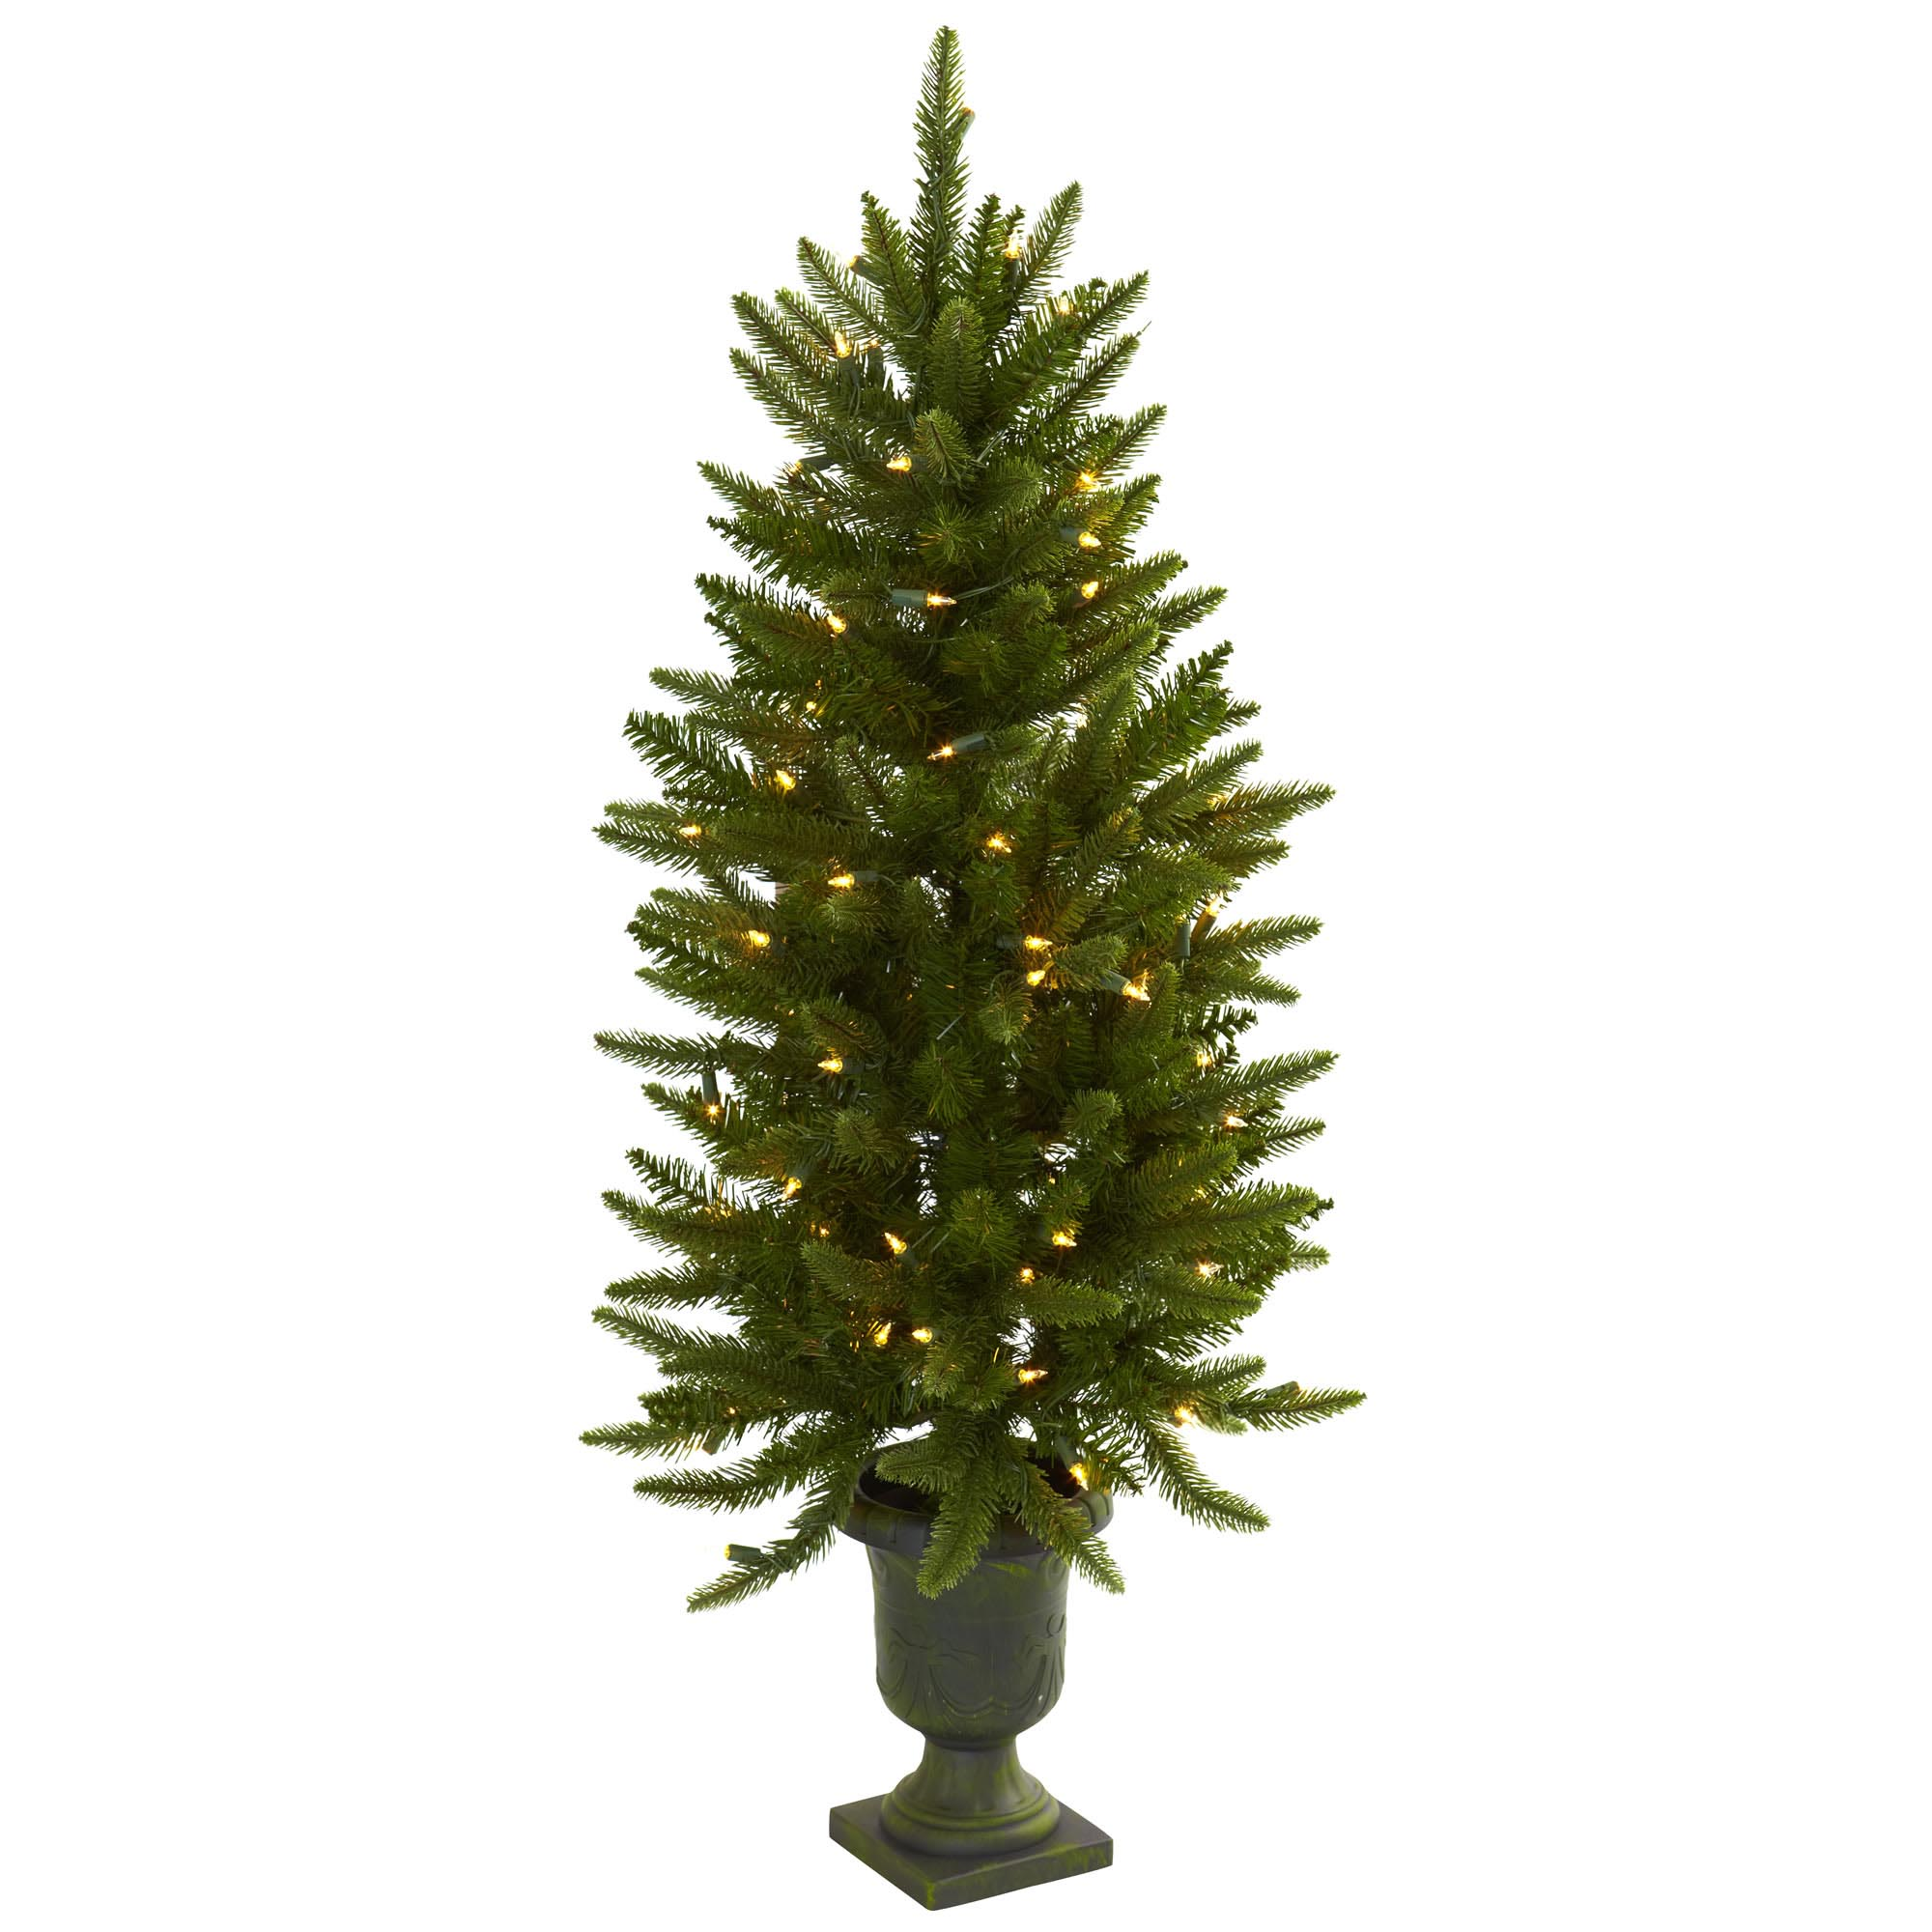 4 Foot Christmas Tree With Lights